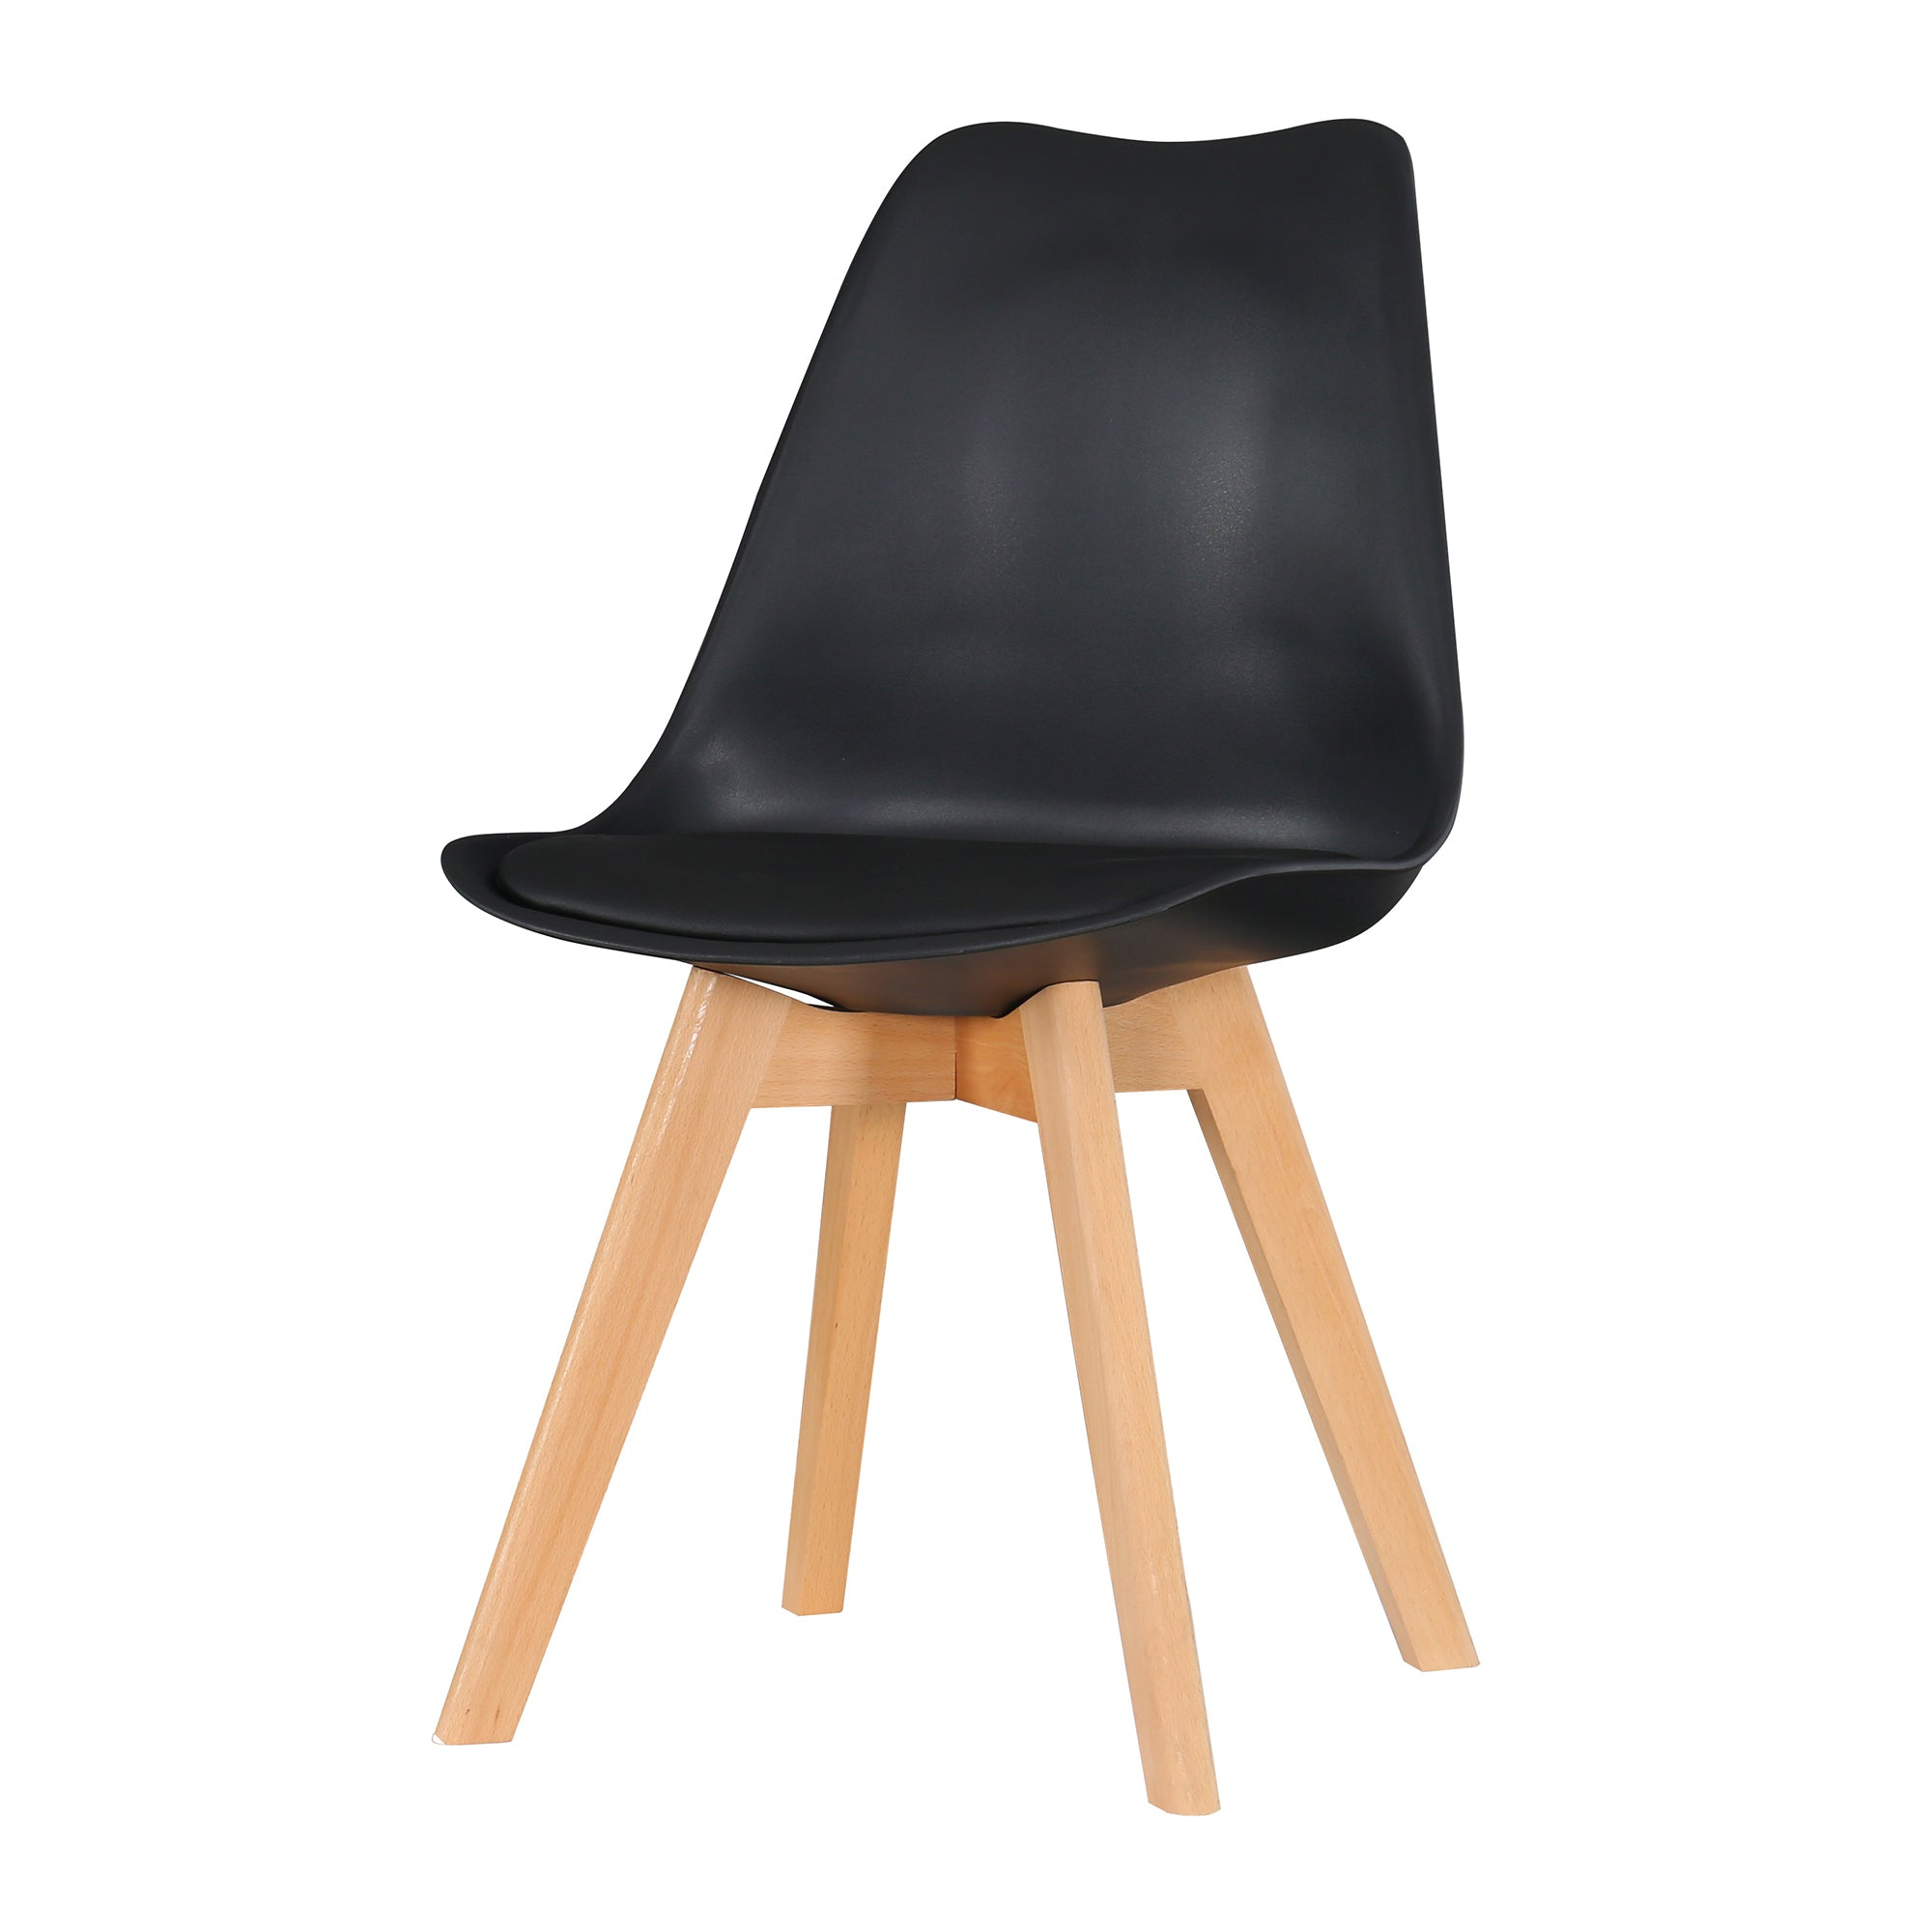 Eames Style Dining Chairs Black with padded seat - Fervor + Hue